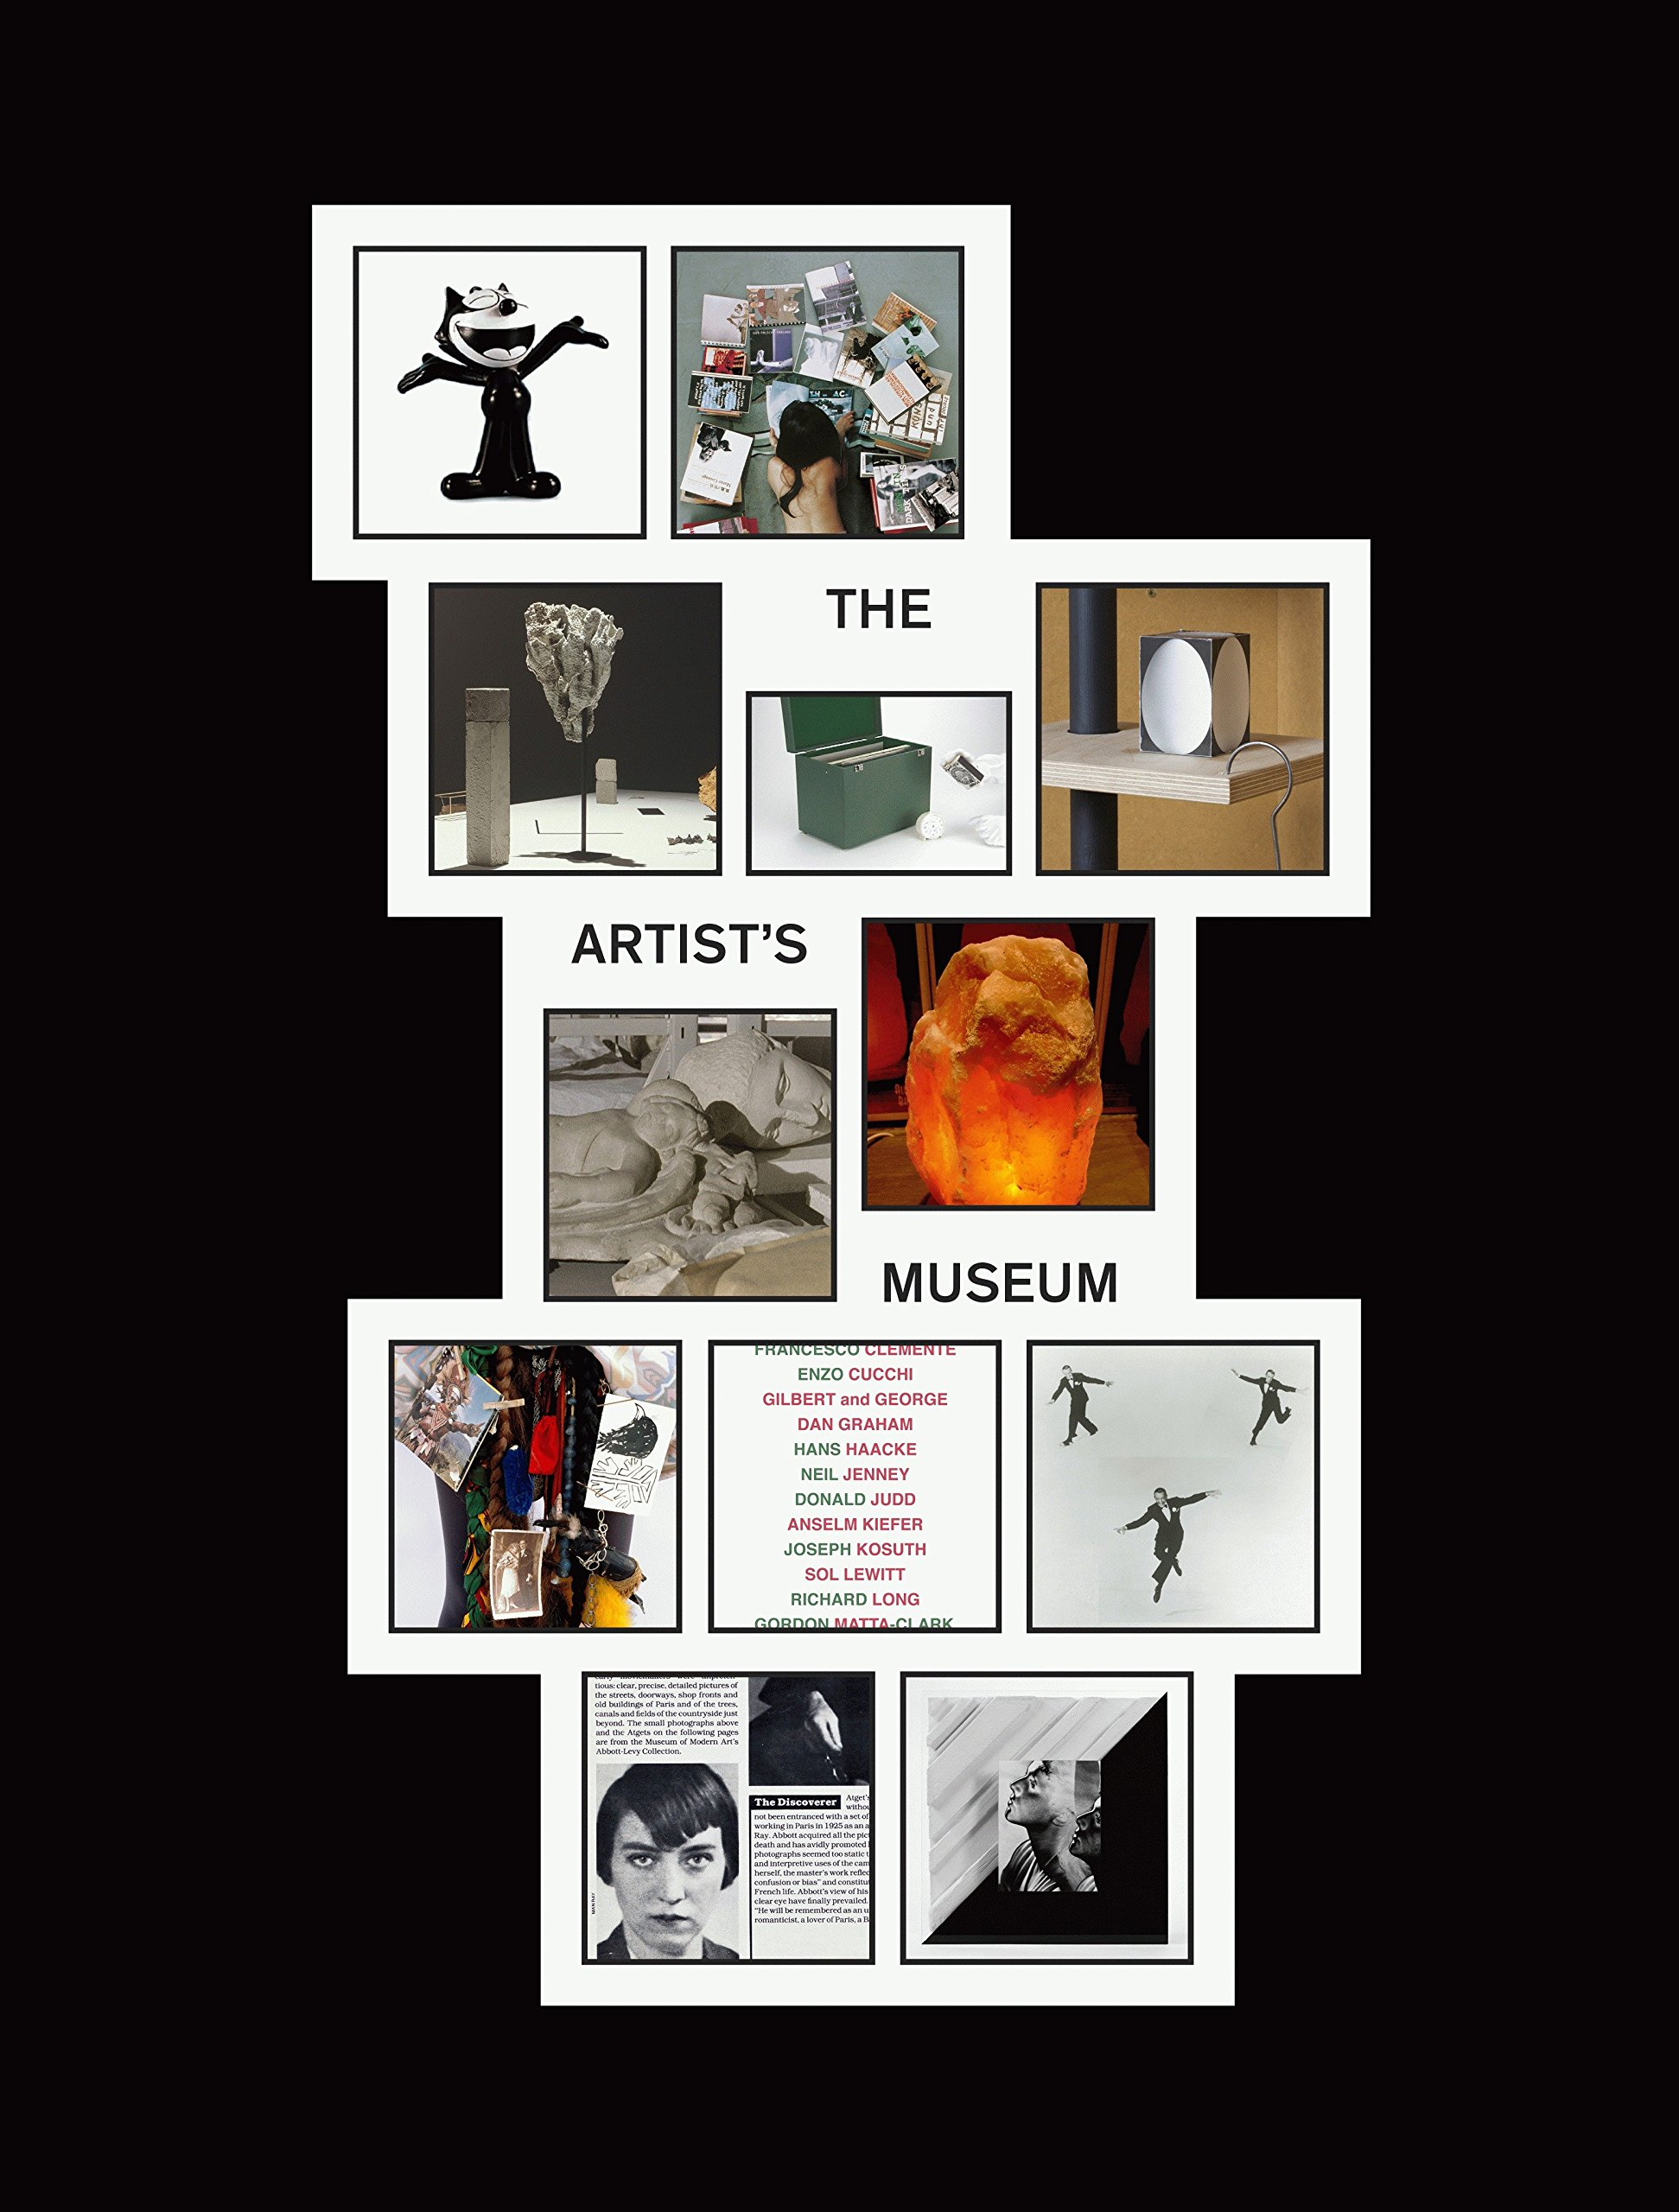 The Artist's Museum